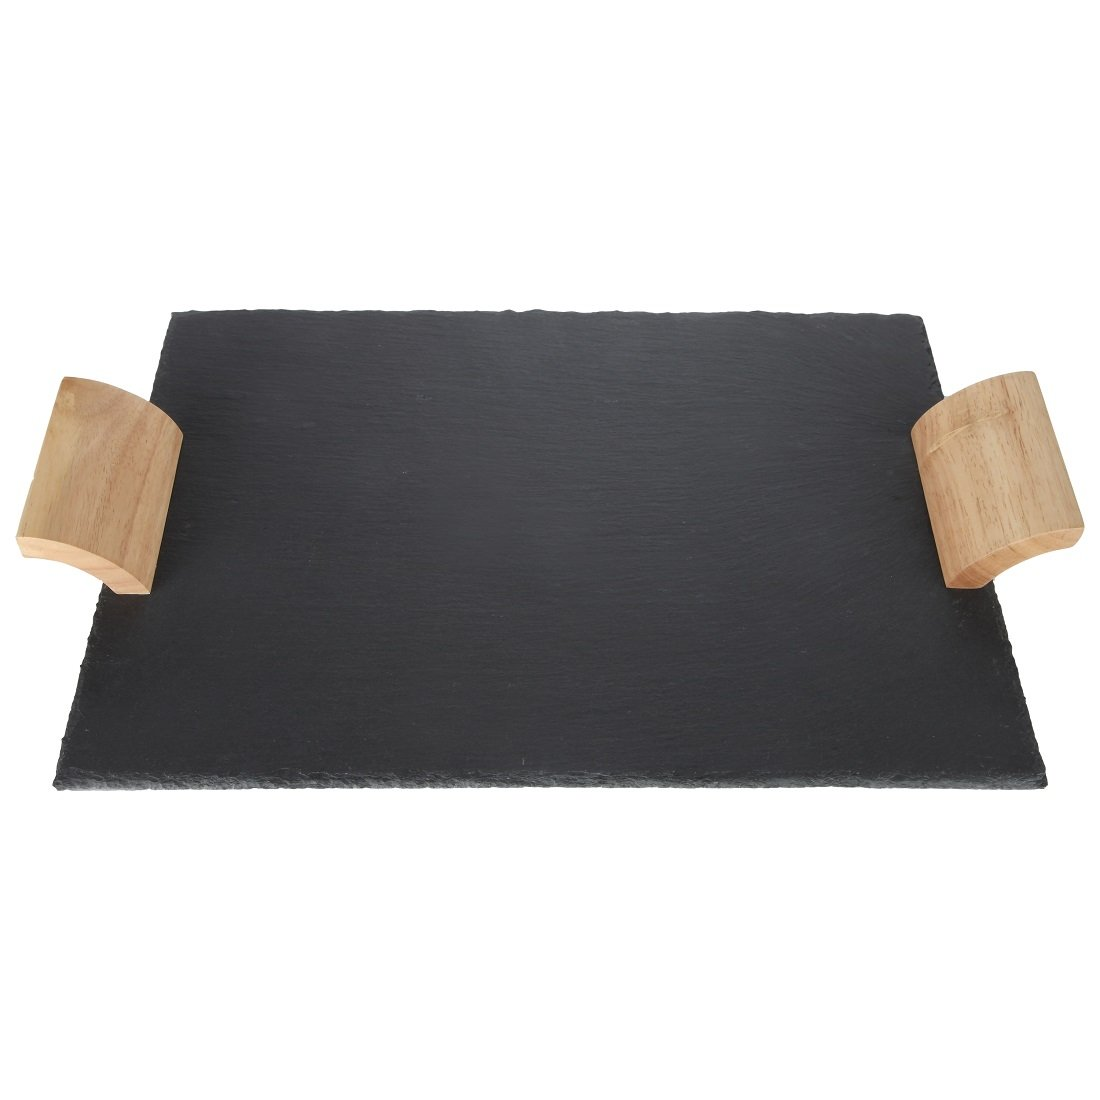 Lily's Home Rustic Slate Cheese Board with Wooden Handles and Chalk, Cheese Tray, 16 X 12 Inch. by Lily's (Image #2)